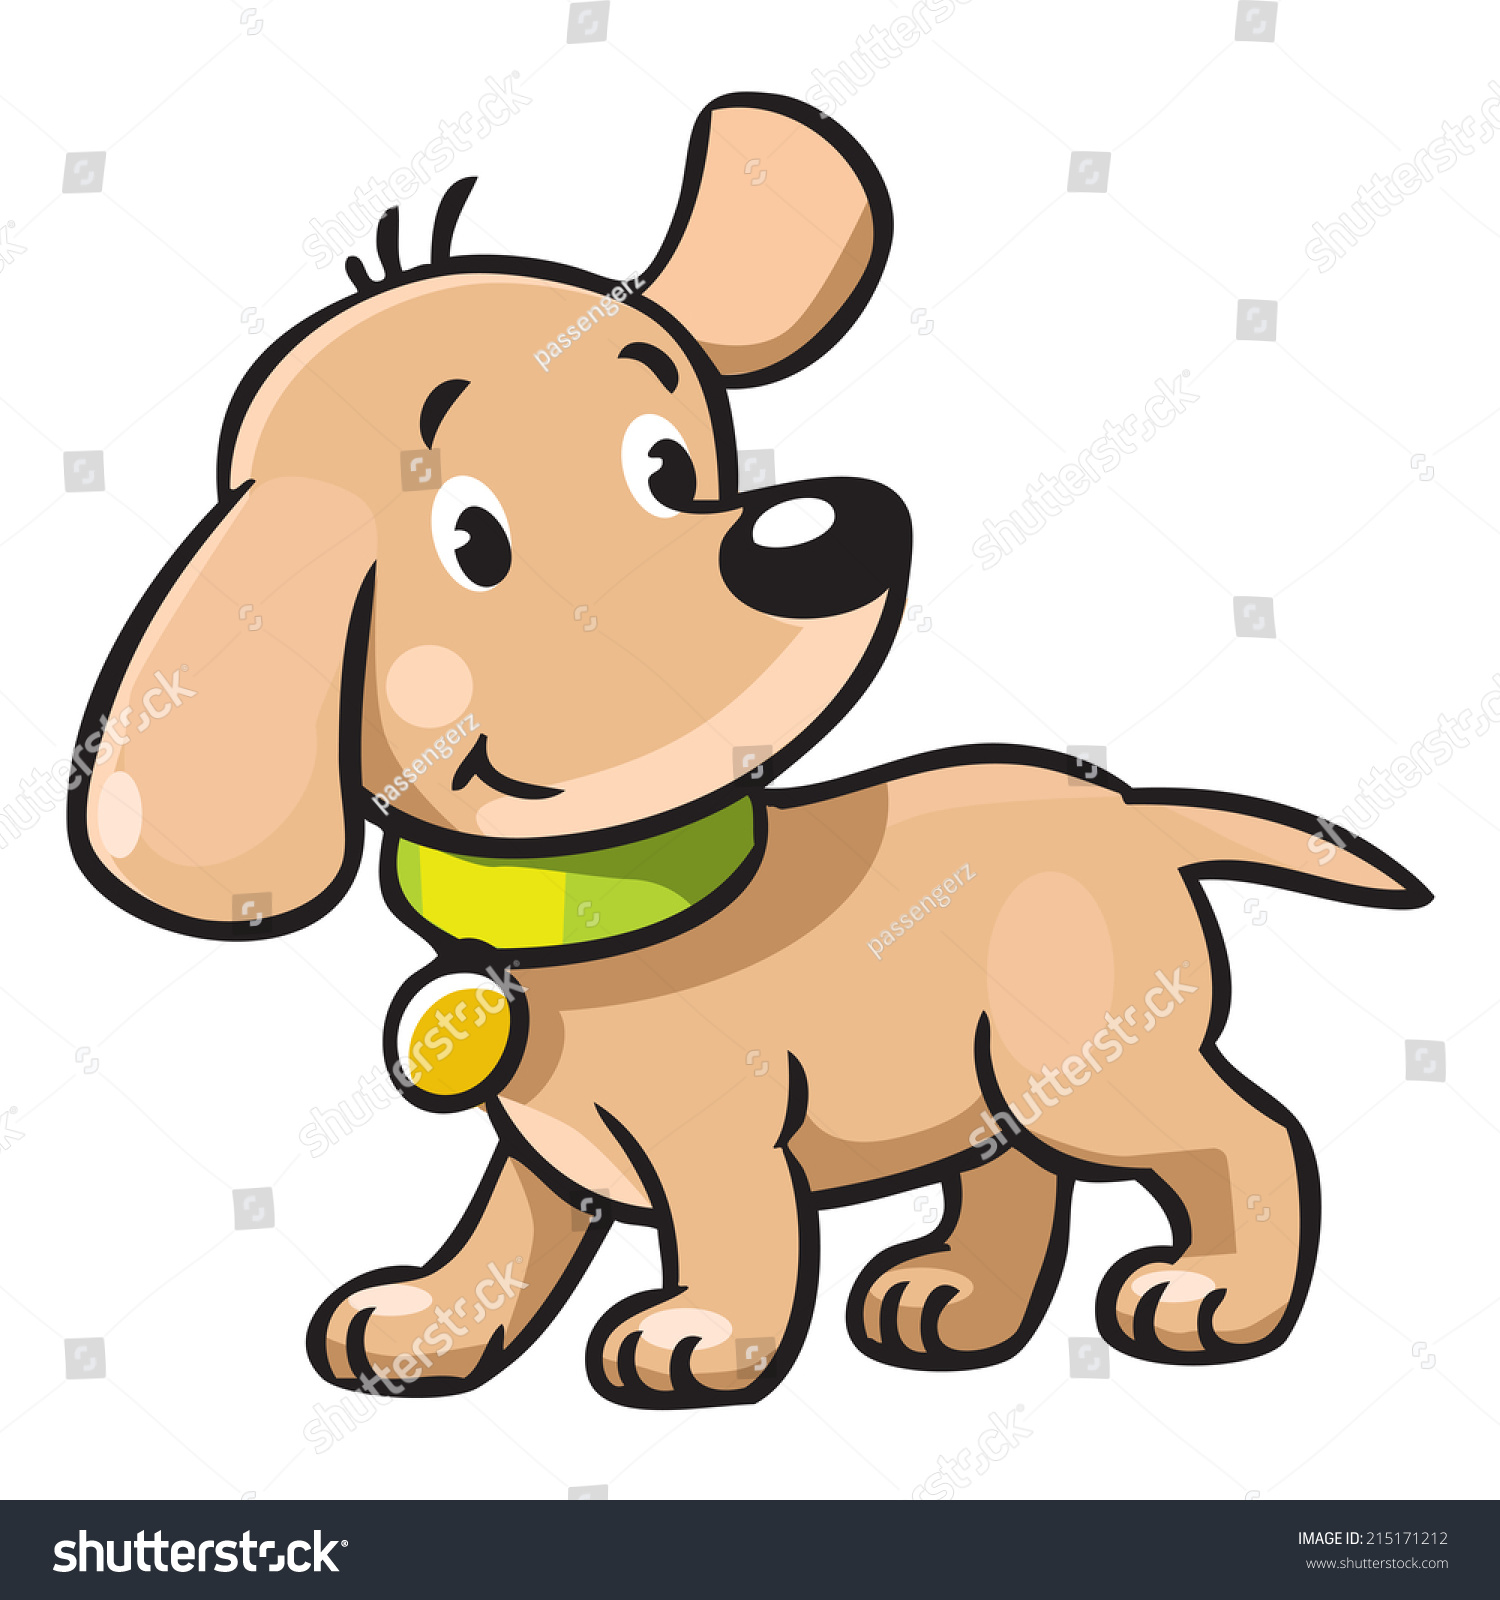 Children Vector Illustration Funny Little Dog Stock Vector 215171212 ...